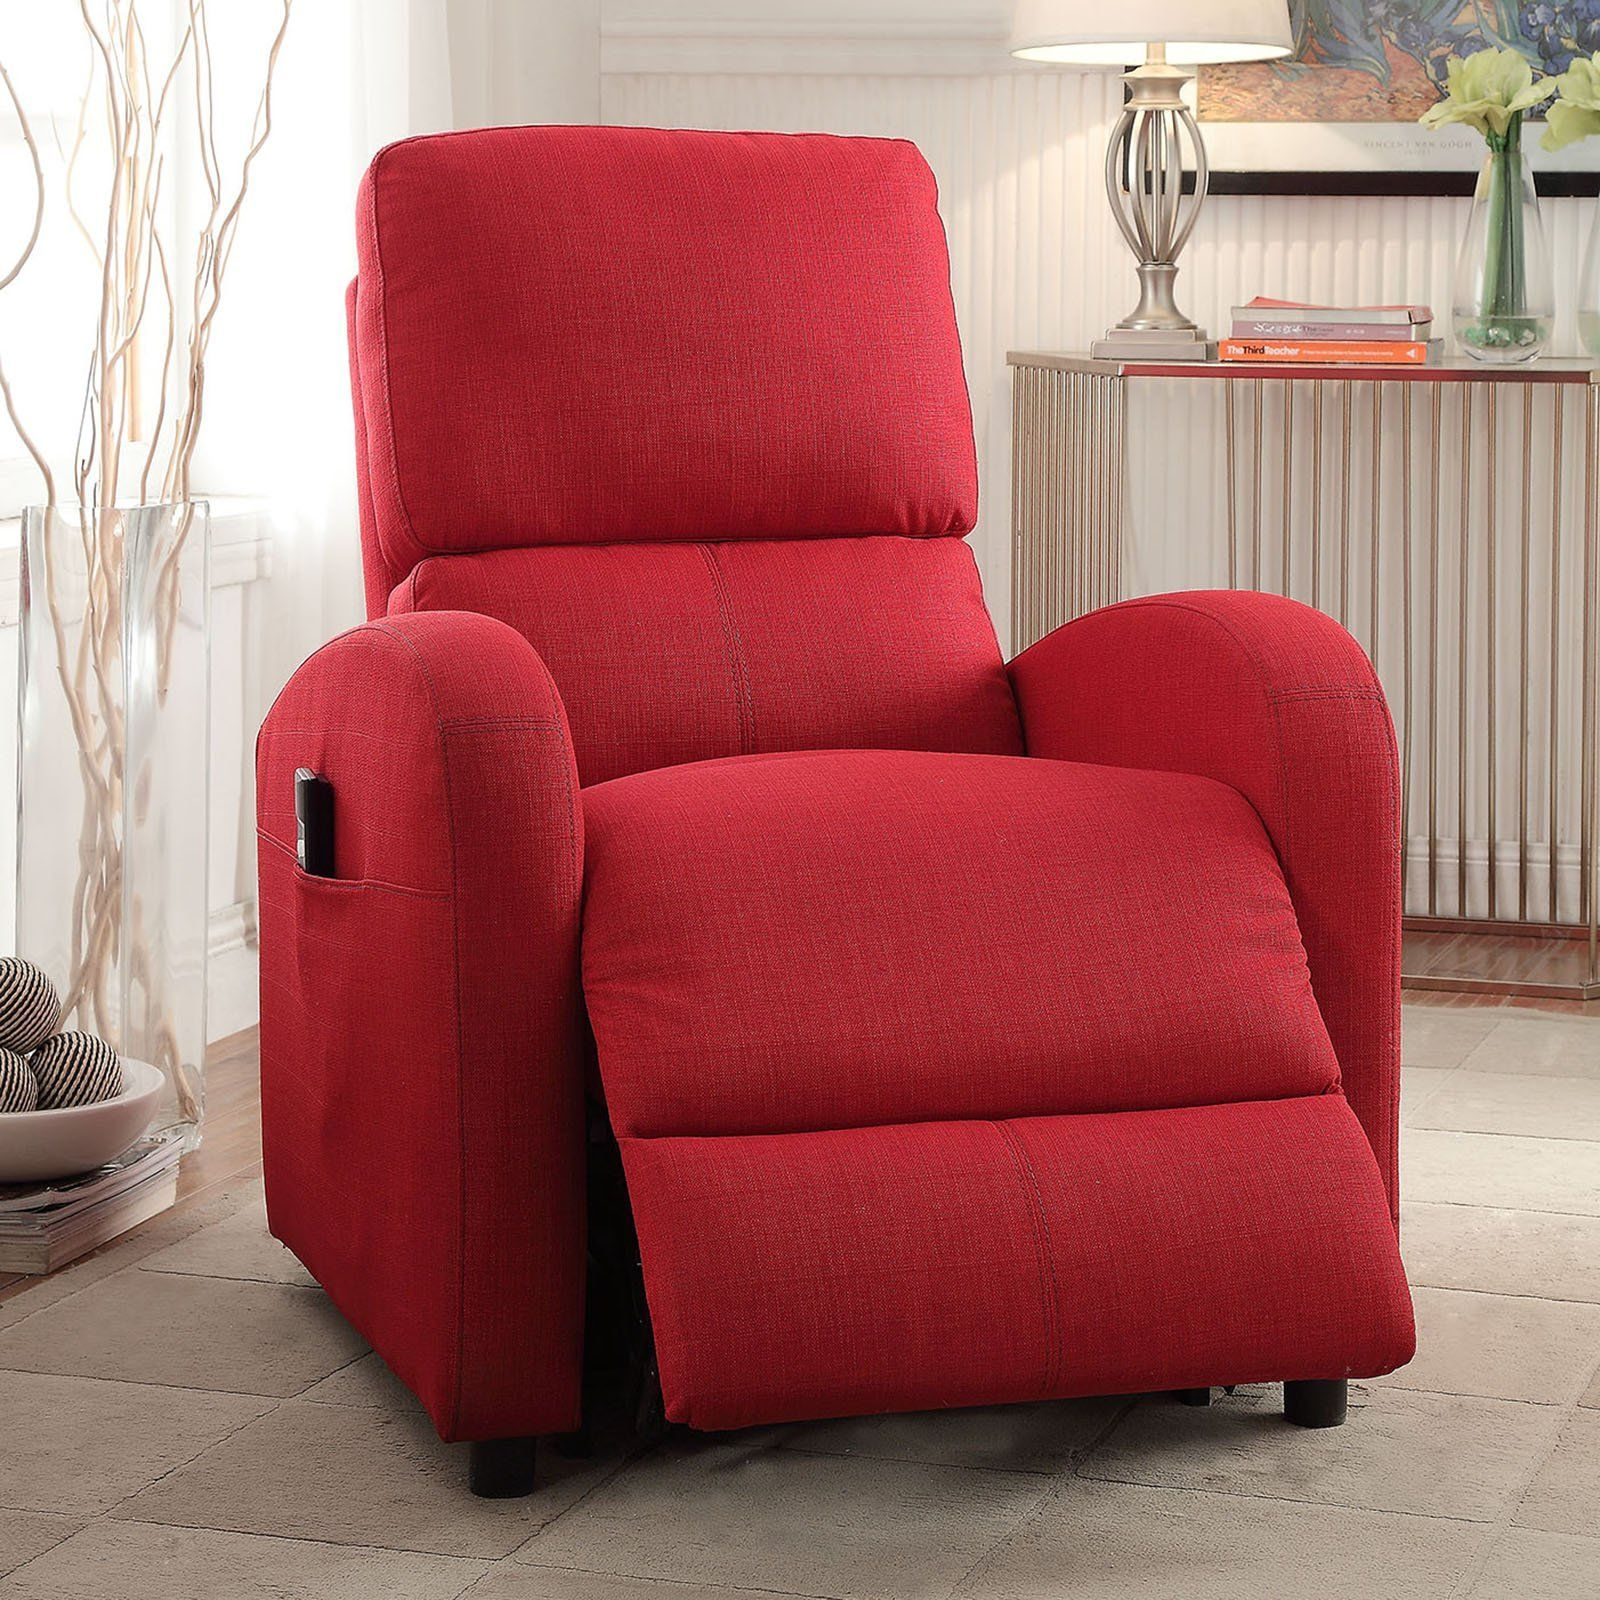 acme furniture croria power lift recliner 59345 powerlifting of